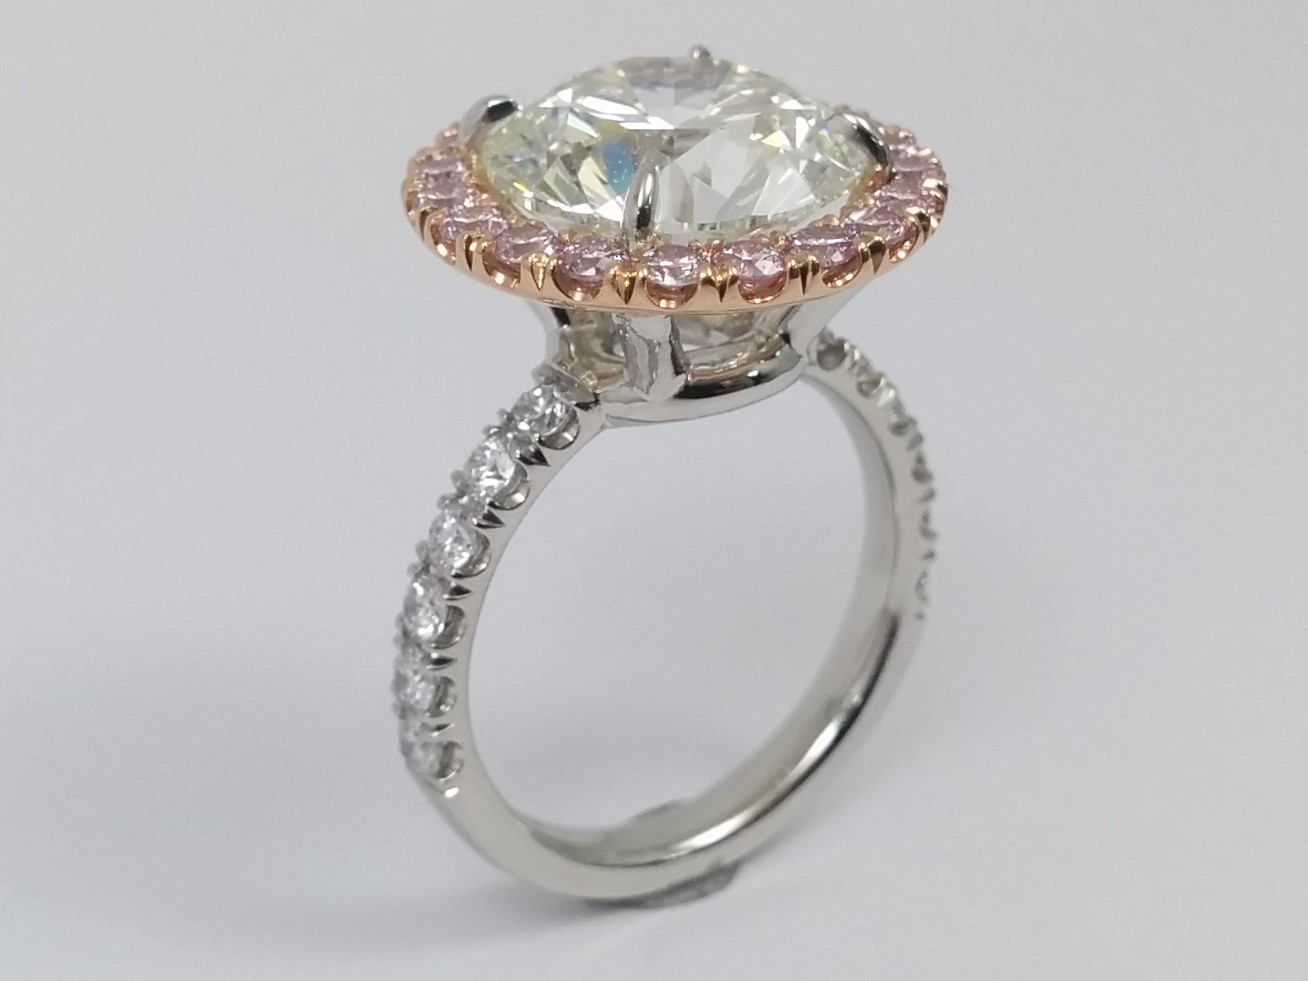 engagement white diamonds products ring kl diamond gold rings jewellery pink